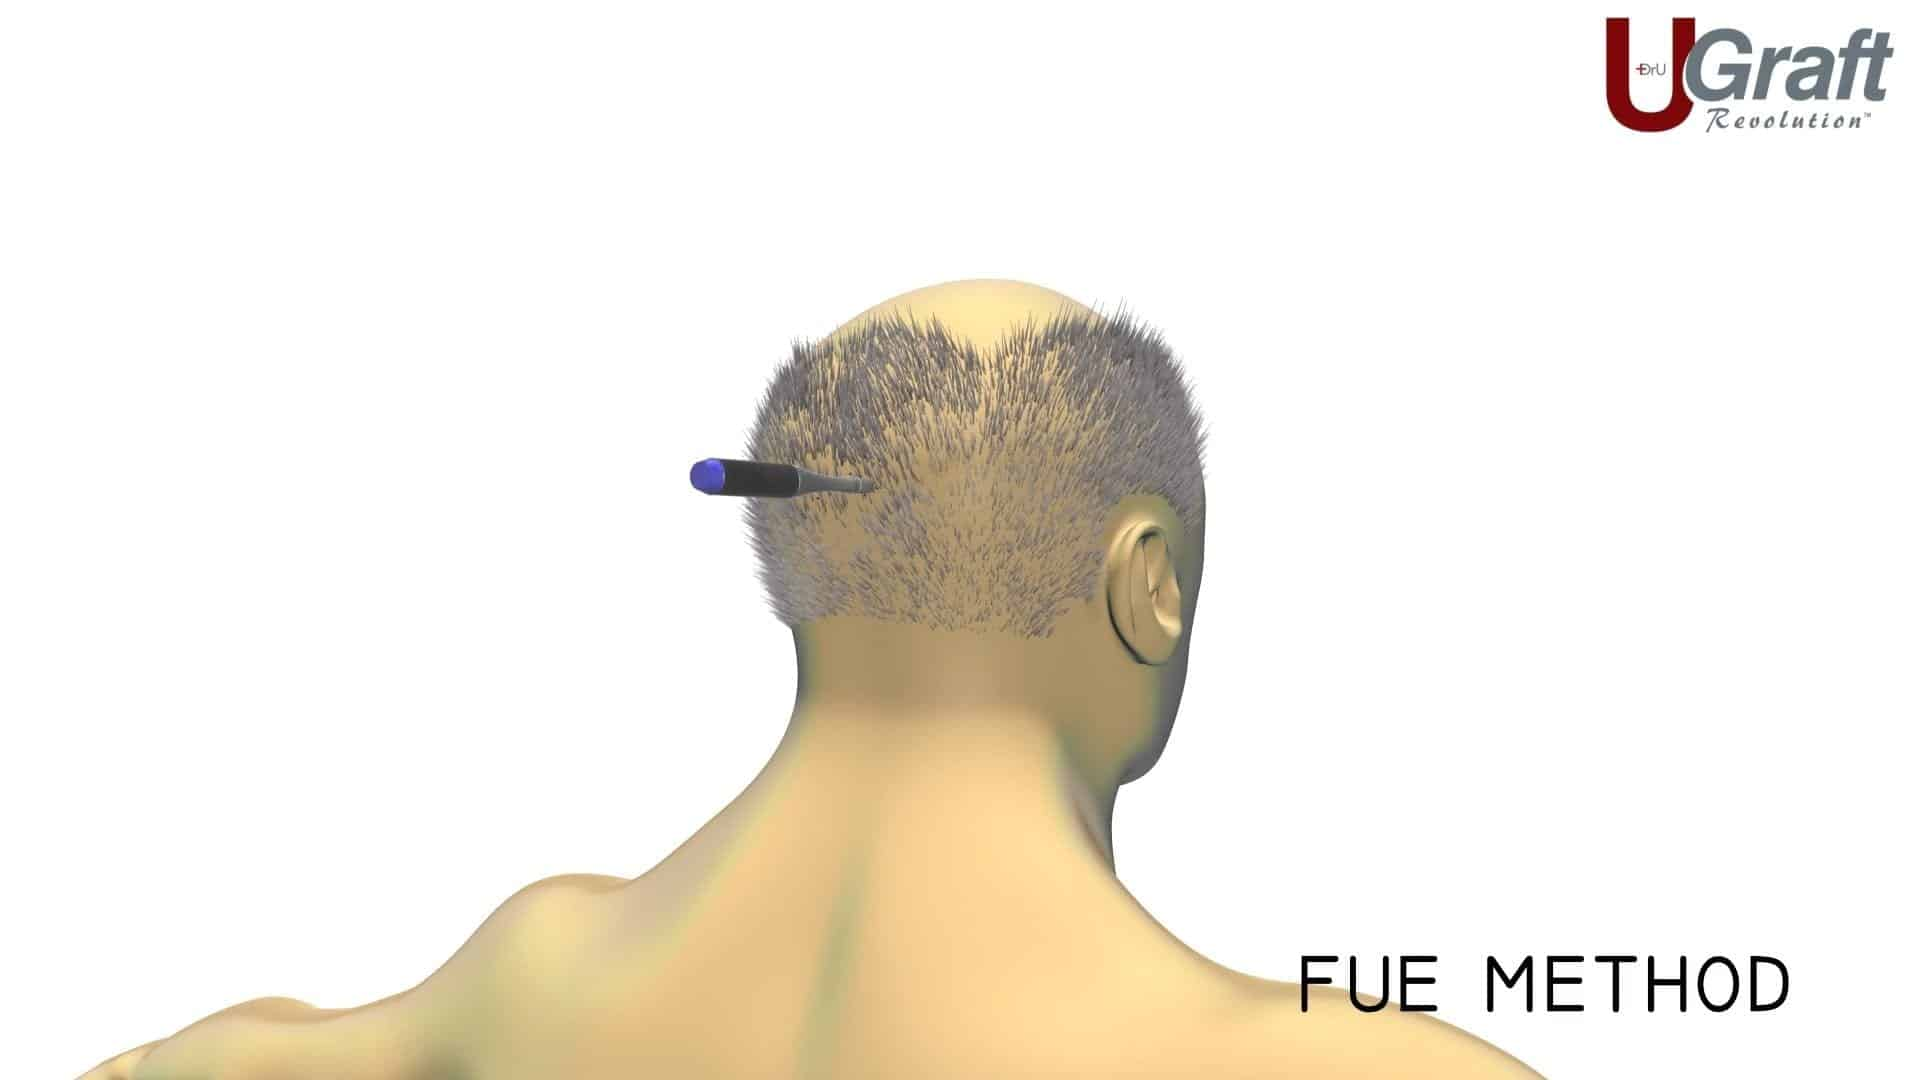 Dr. Umar deployed his advanced FUE method to extract 200 grafts from this patients head in order to fill in her temples. This photo shows how the FUE tool works to extract individual hair follicles to avoid any significant scarring.